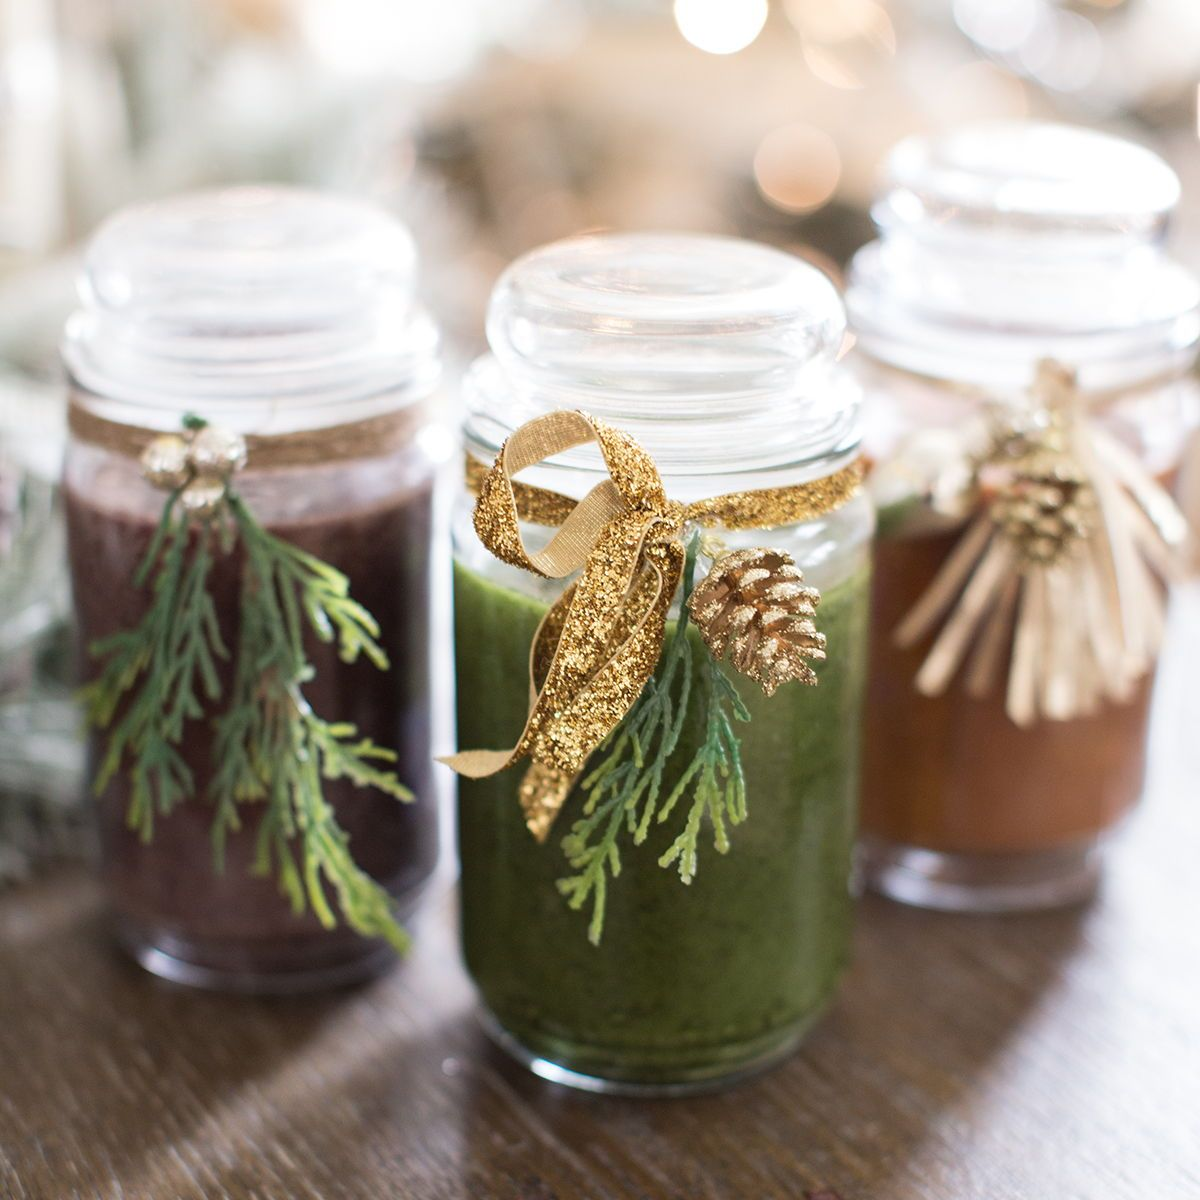 DIY Jar Candle Gift. Via Just Destiny gifts candles